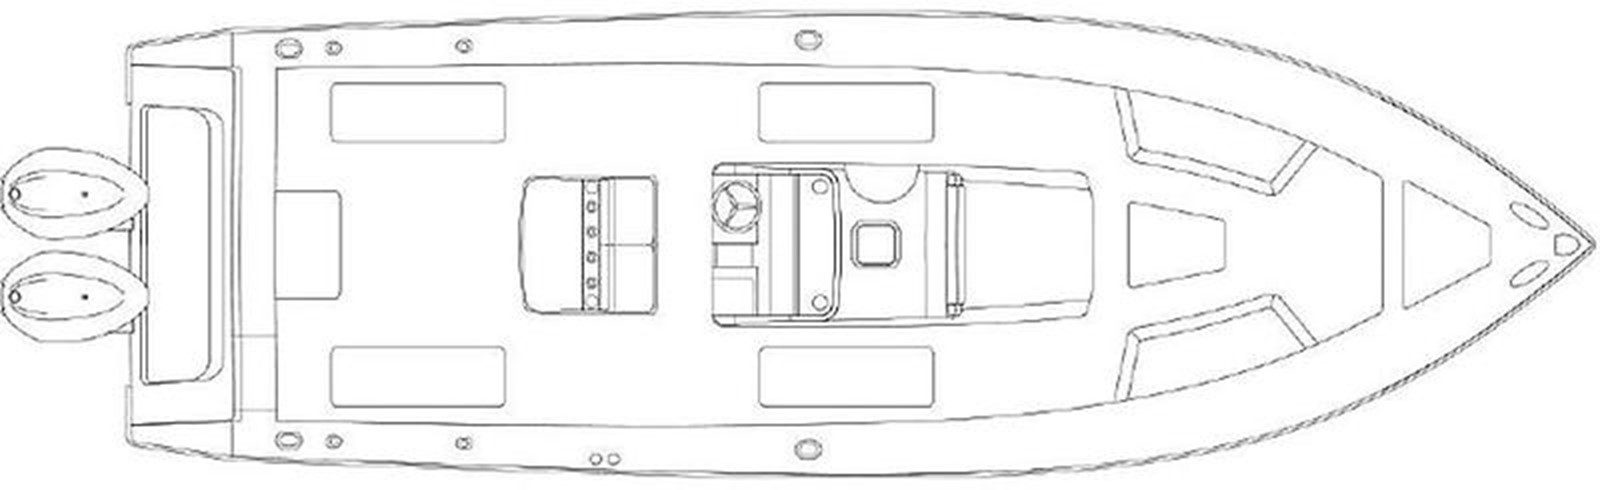 Layout - 34 JUPITER For Sale